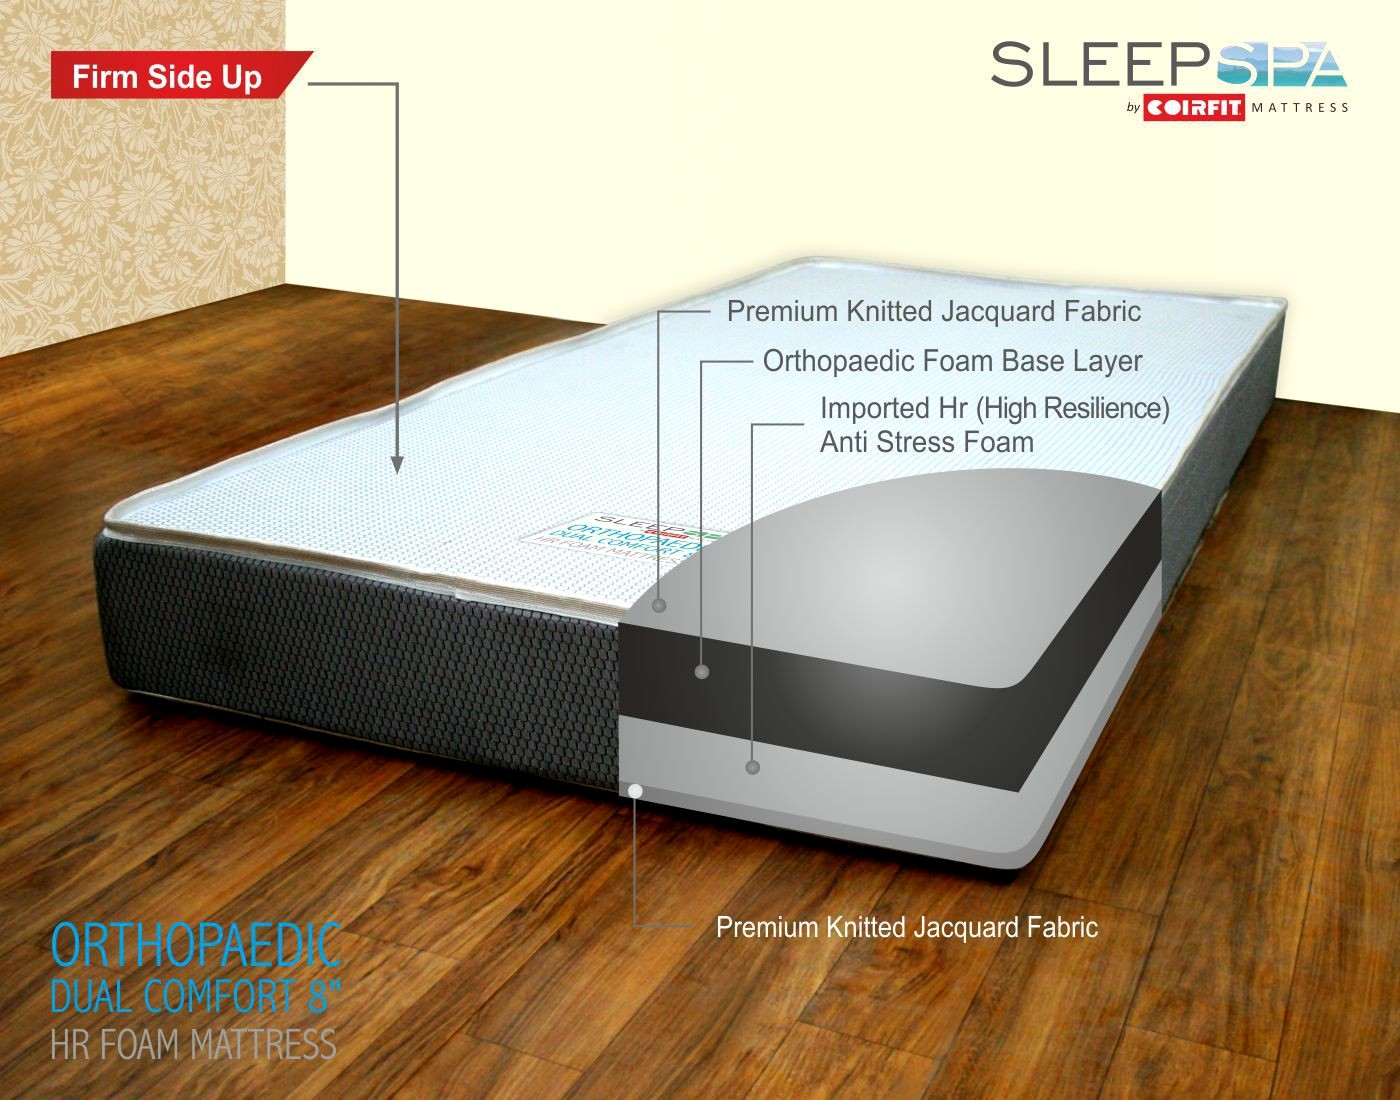 orthopedic mattresses Elegant SLEEP SPA NA 20 32 cm 8 Orthopedic Mattress Buy SLEEP SPA NA